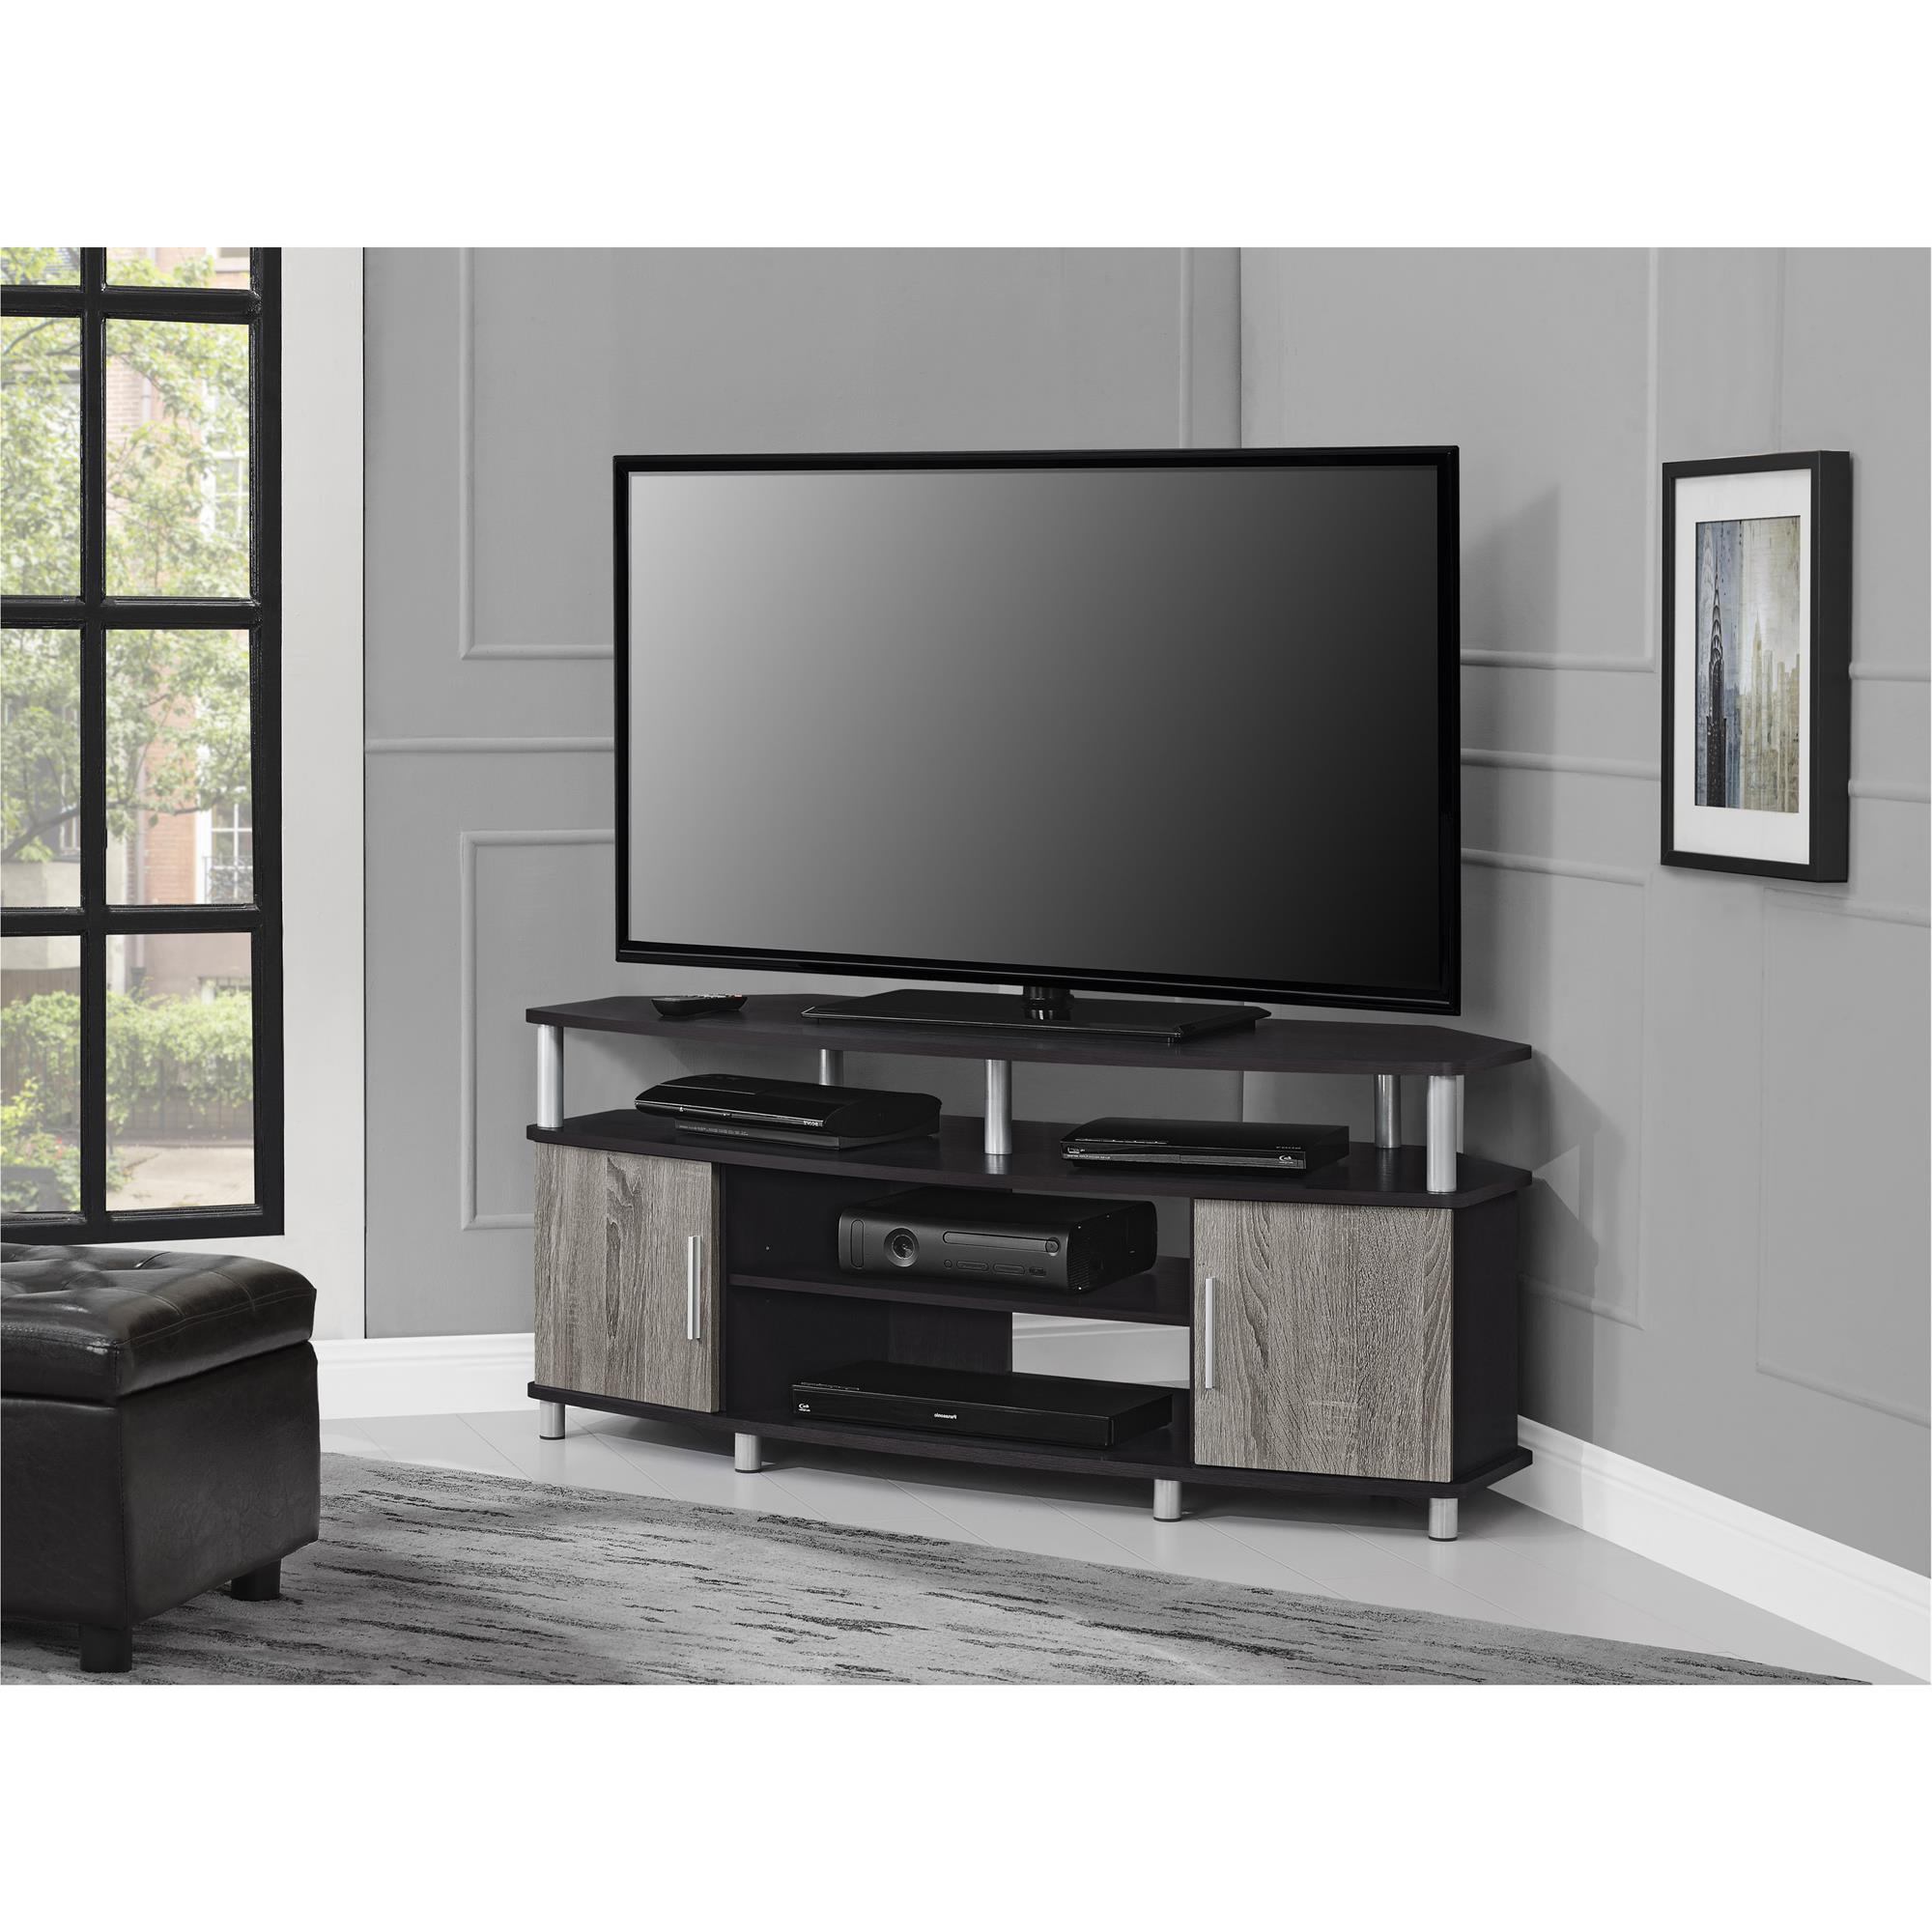 "Ameriwood Home Carson Corner Tv Stand For Tvs Up To 50"" Wide, Black Intended For Newest Corner Tv Cabinets For Flat Screens With Doors (Gallery 10 of 20)"